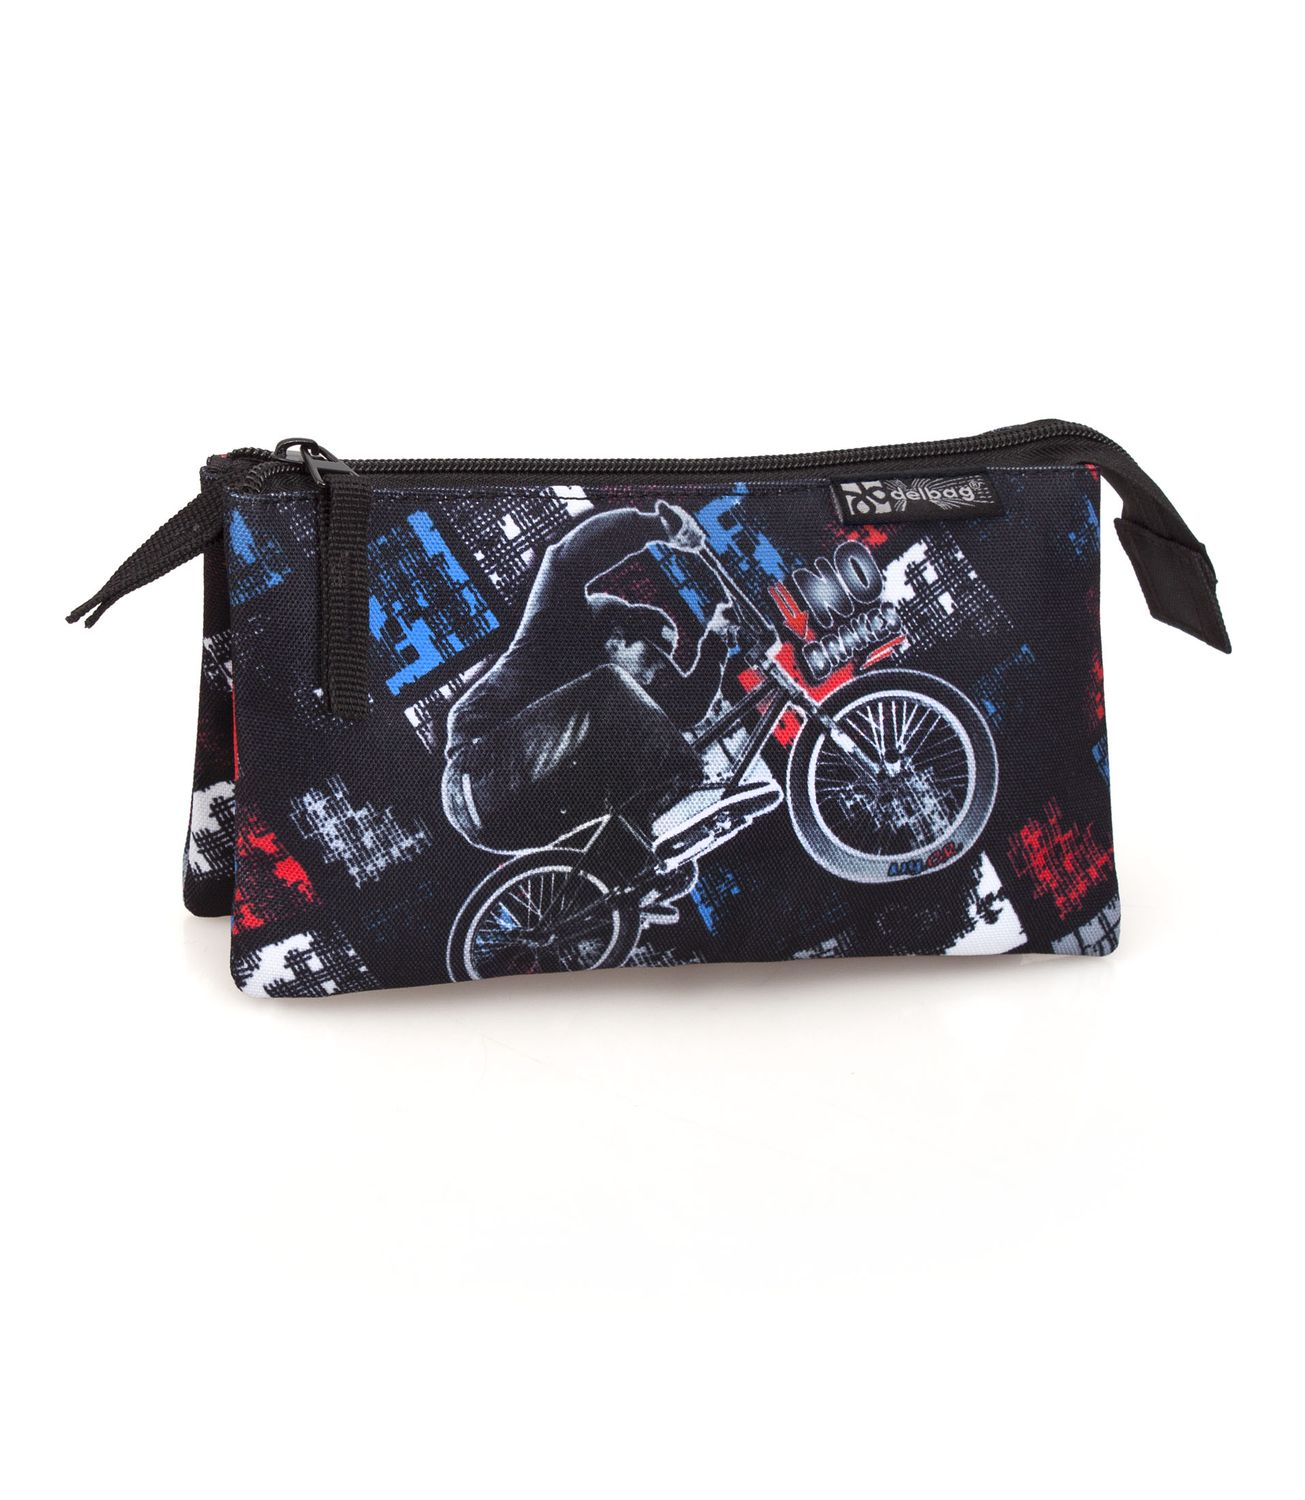 Delbag BIKE CITY RIDER Triple Pencil Case – image 1